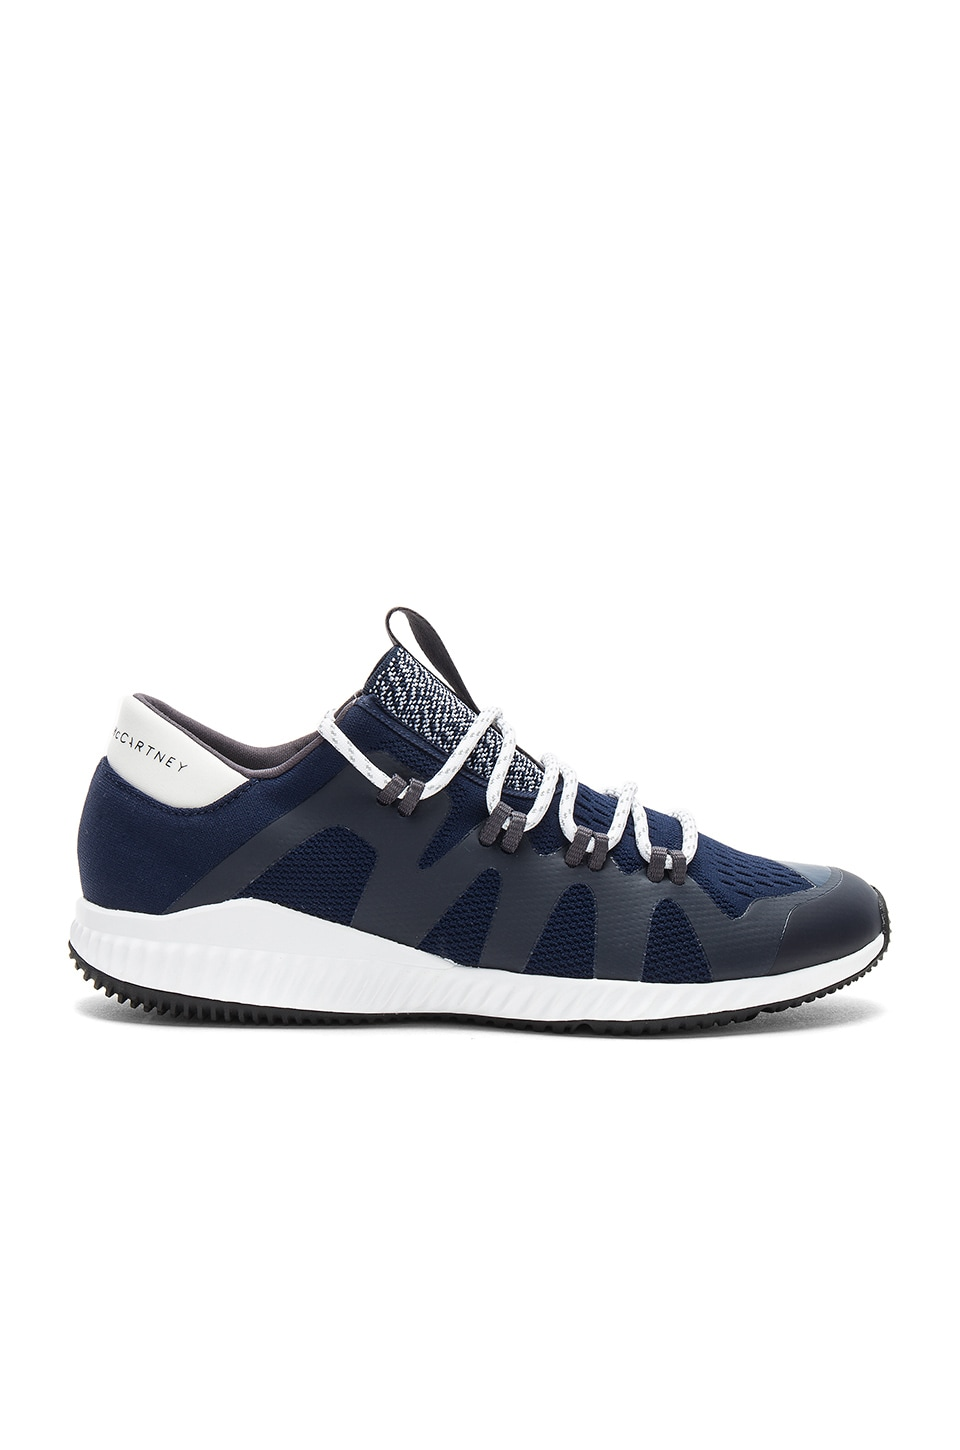 adidas by Stella McCartney Crazy Train Pro Sneaker in Collegiate Navy & Core White